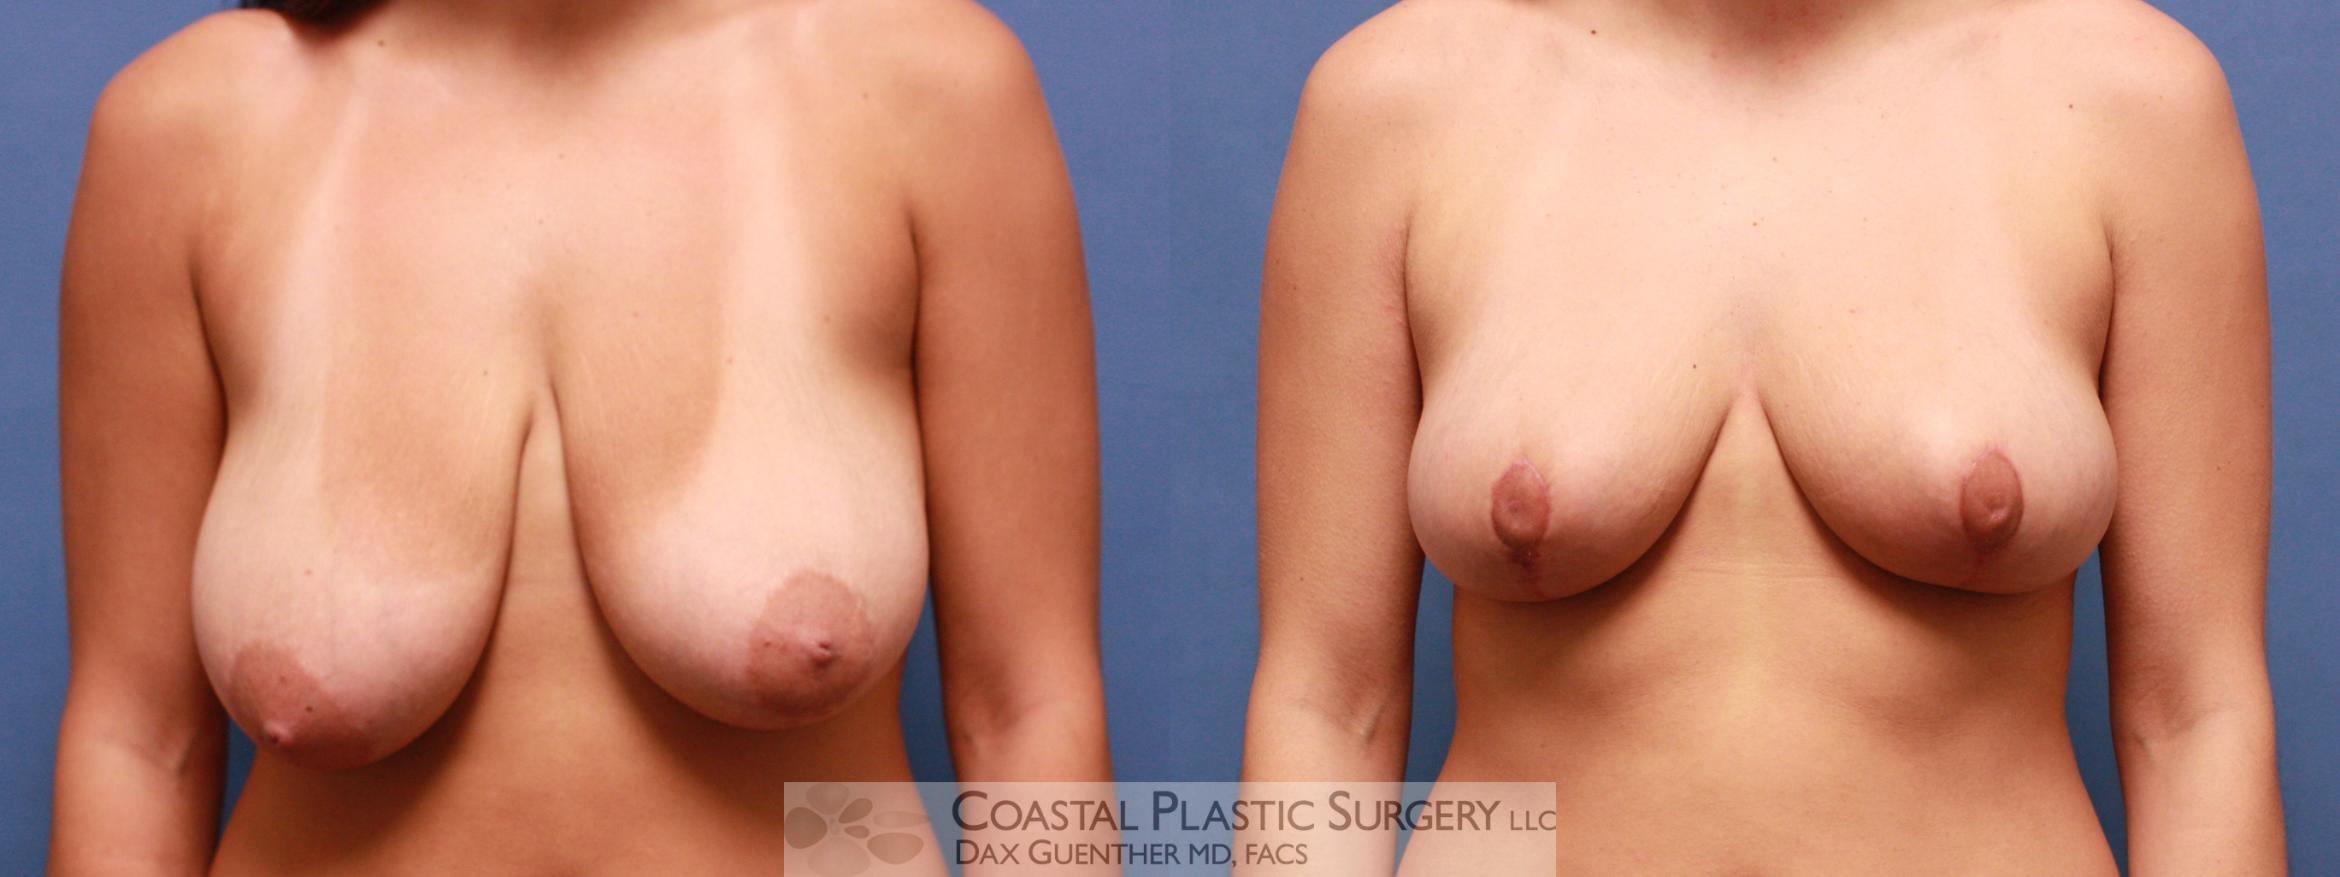 Breast Reduction Before & After Photo | Hingham, MA | Dax Guenther, MD: Coastal Plastic Surgery